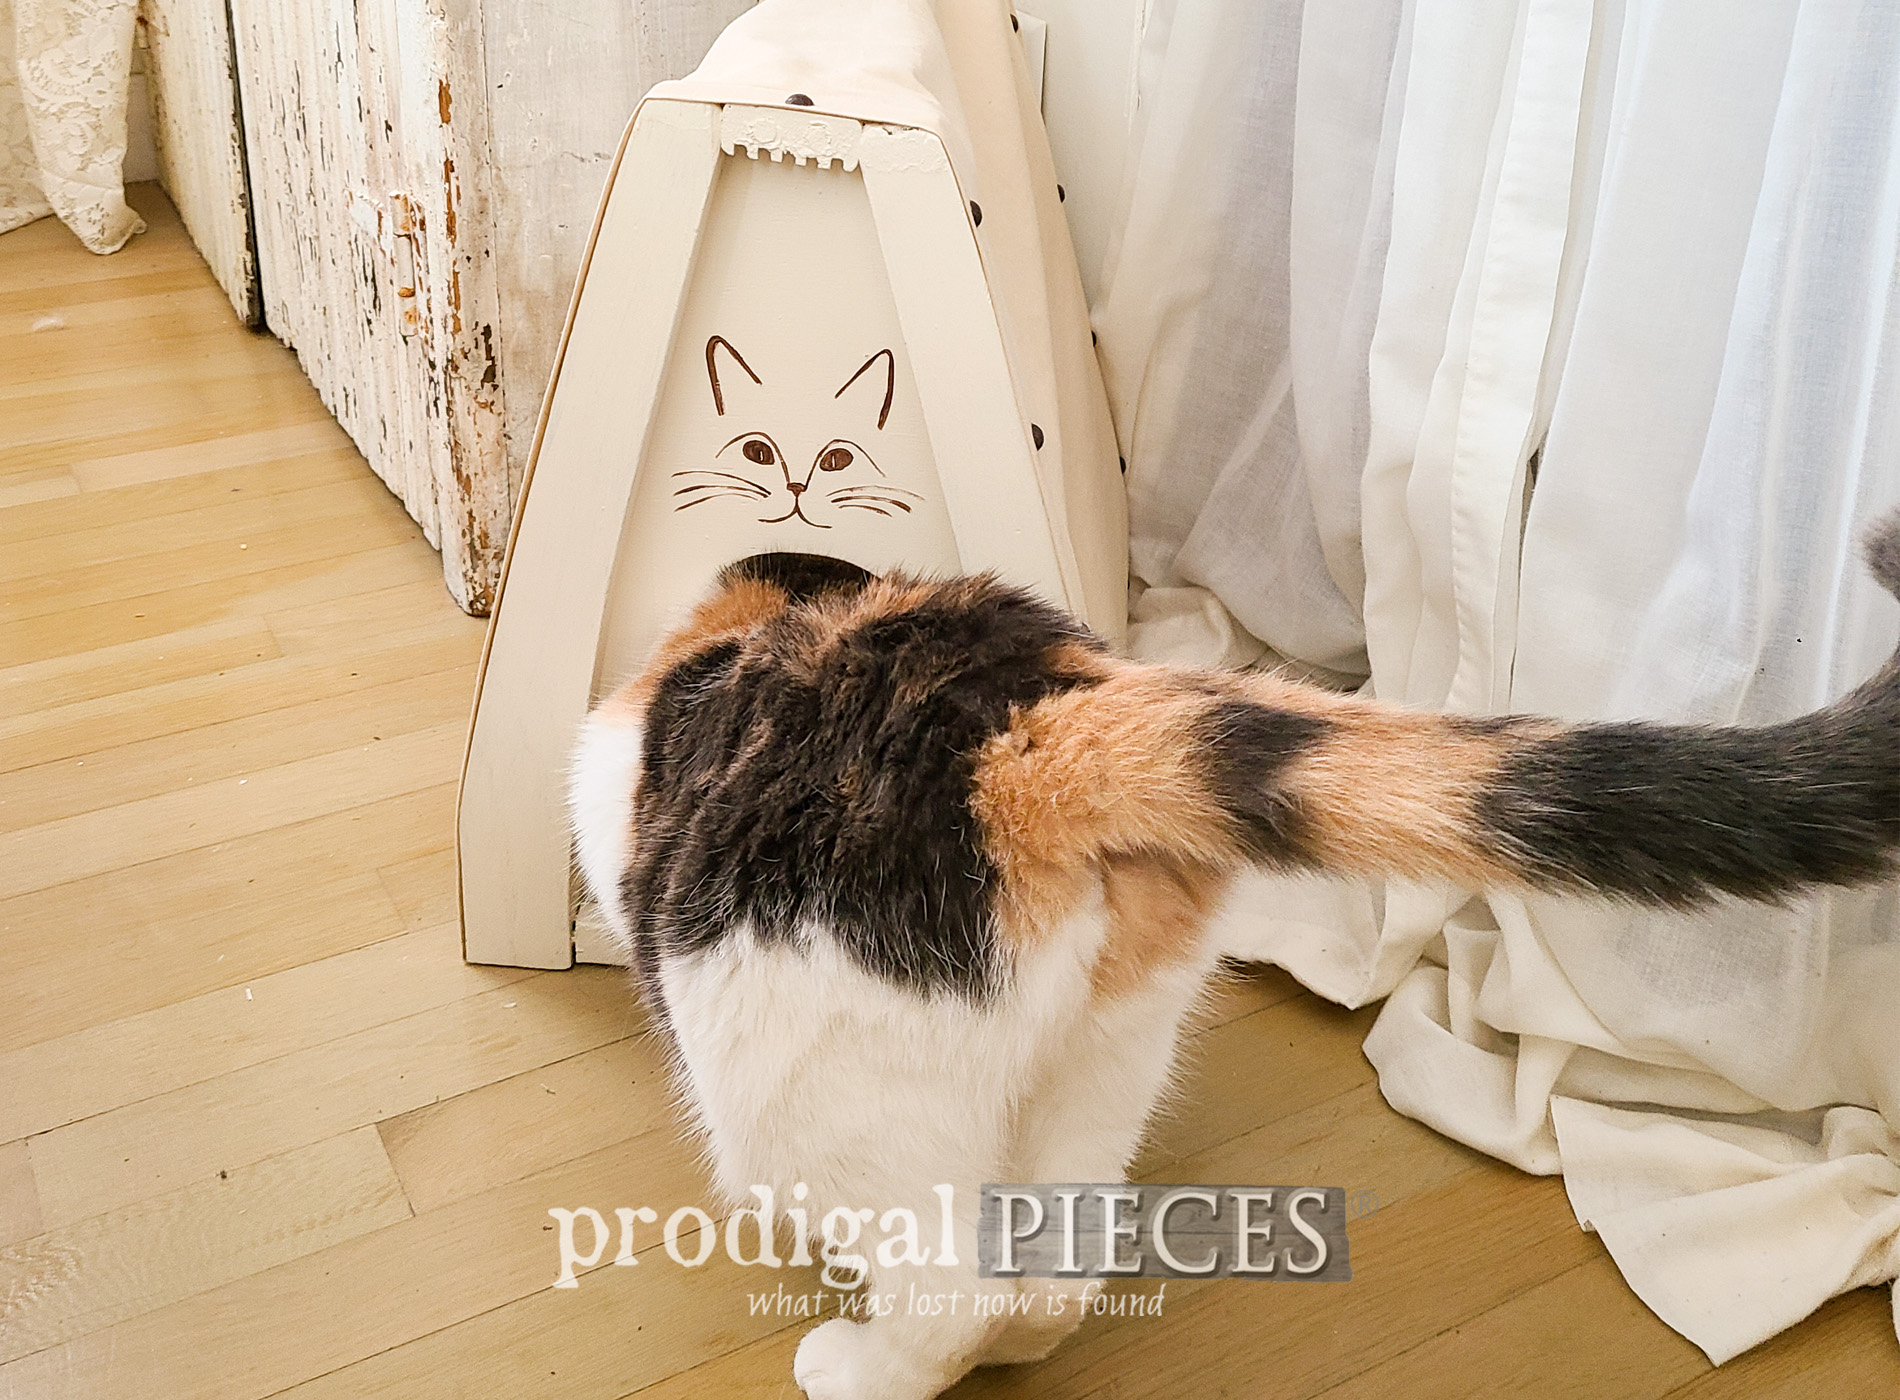 Featured Upcycled Chair Parts transformed into a Cat Cave by Larissa of Prodigal Pieces | prodigalpieces.com #prodigalpieces #diy #cats #pets #home #upcycled